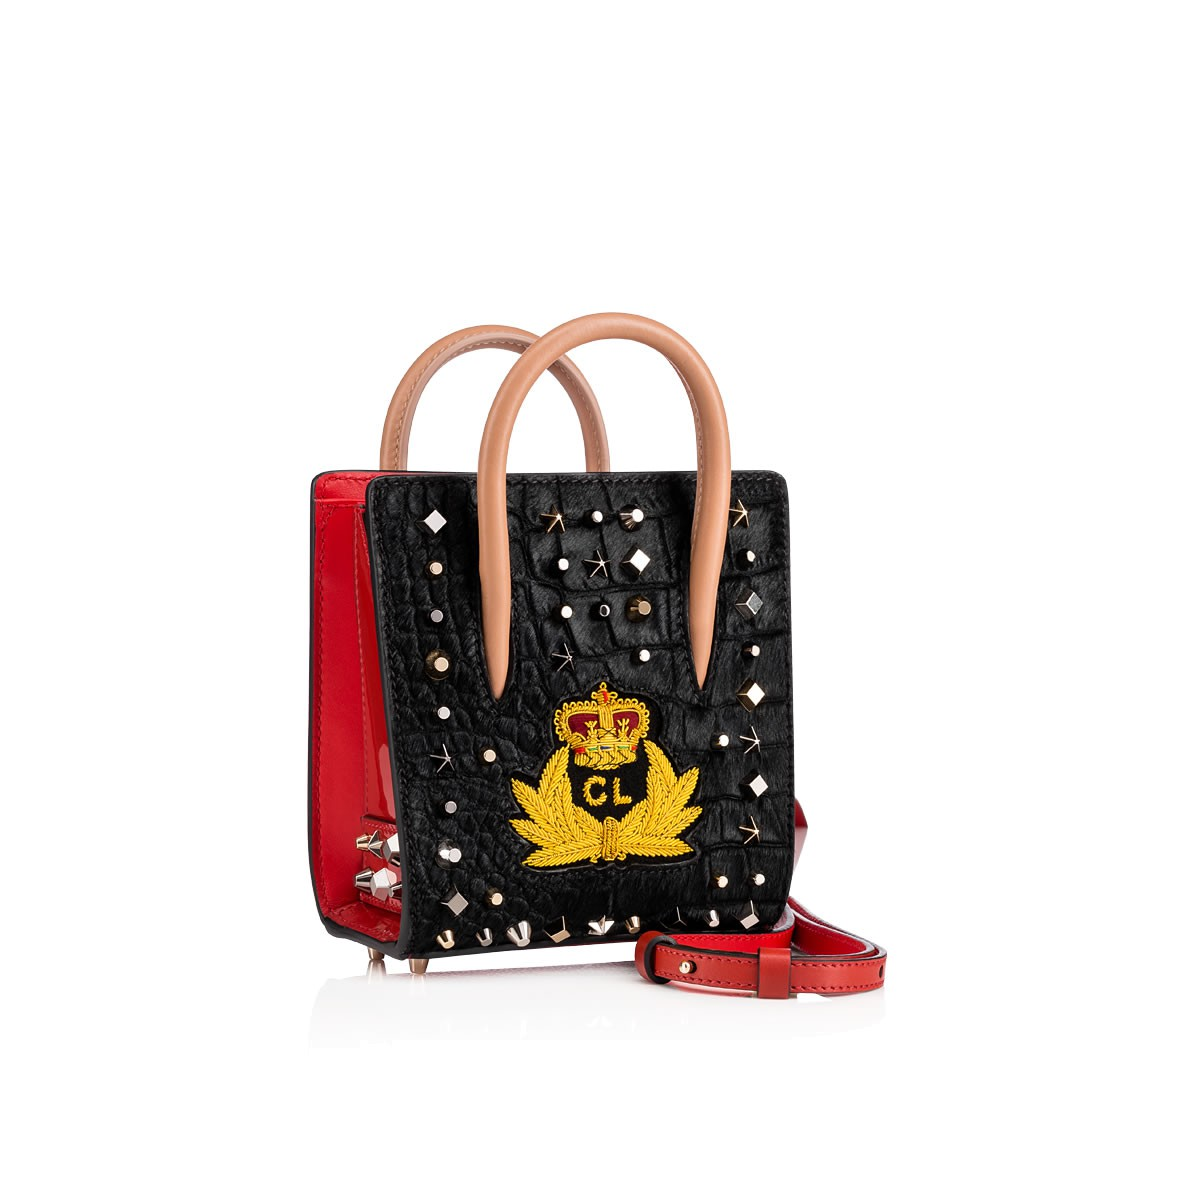 Bags - Paloma Nano Pony Croco/pat/ecusson Sp Trashmix Creative Leather - Christian Louboutin